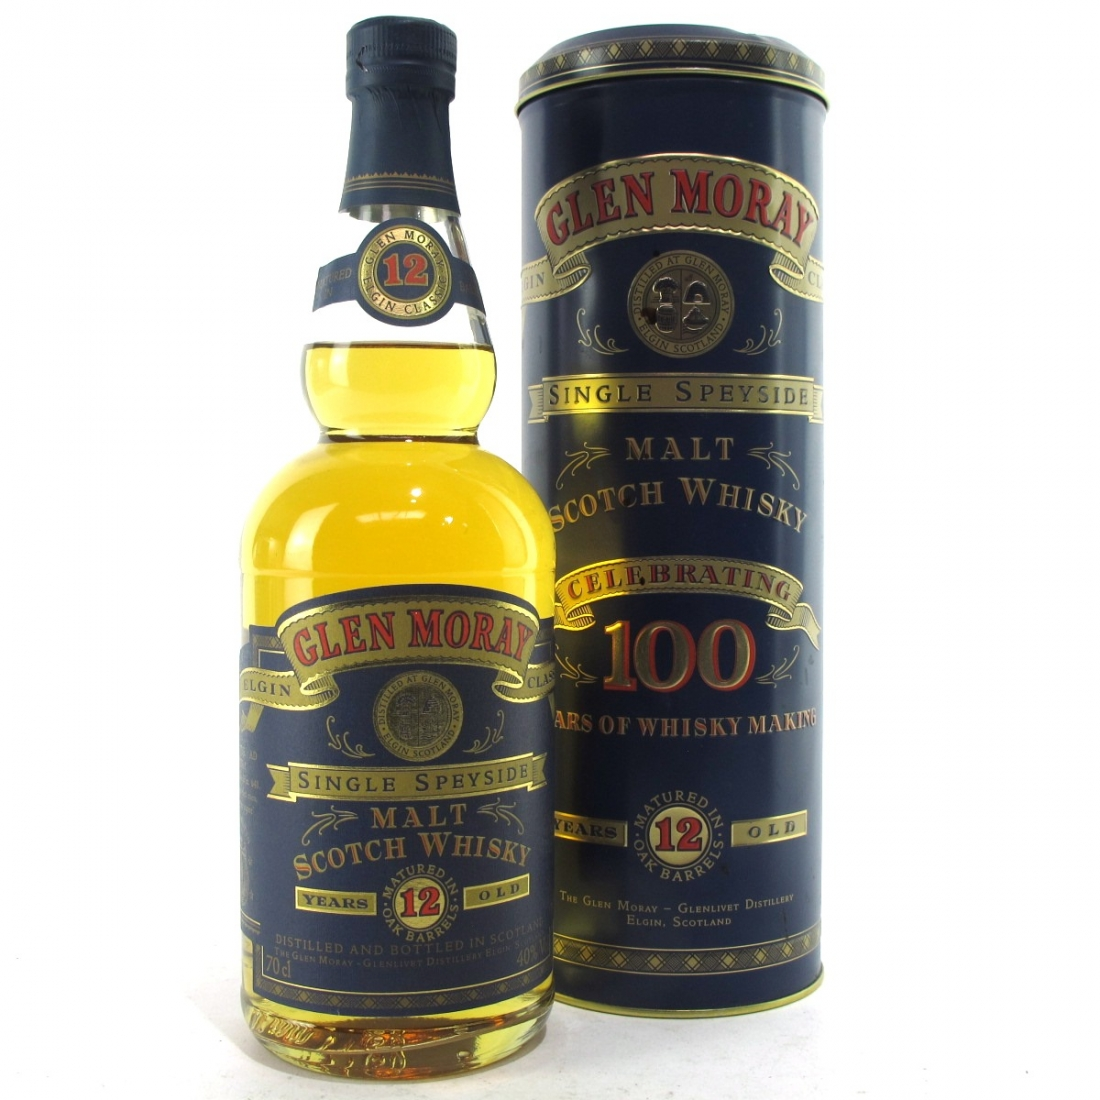 Glen Moray 12 Year Old 100 Years of Whisky Making